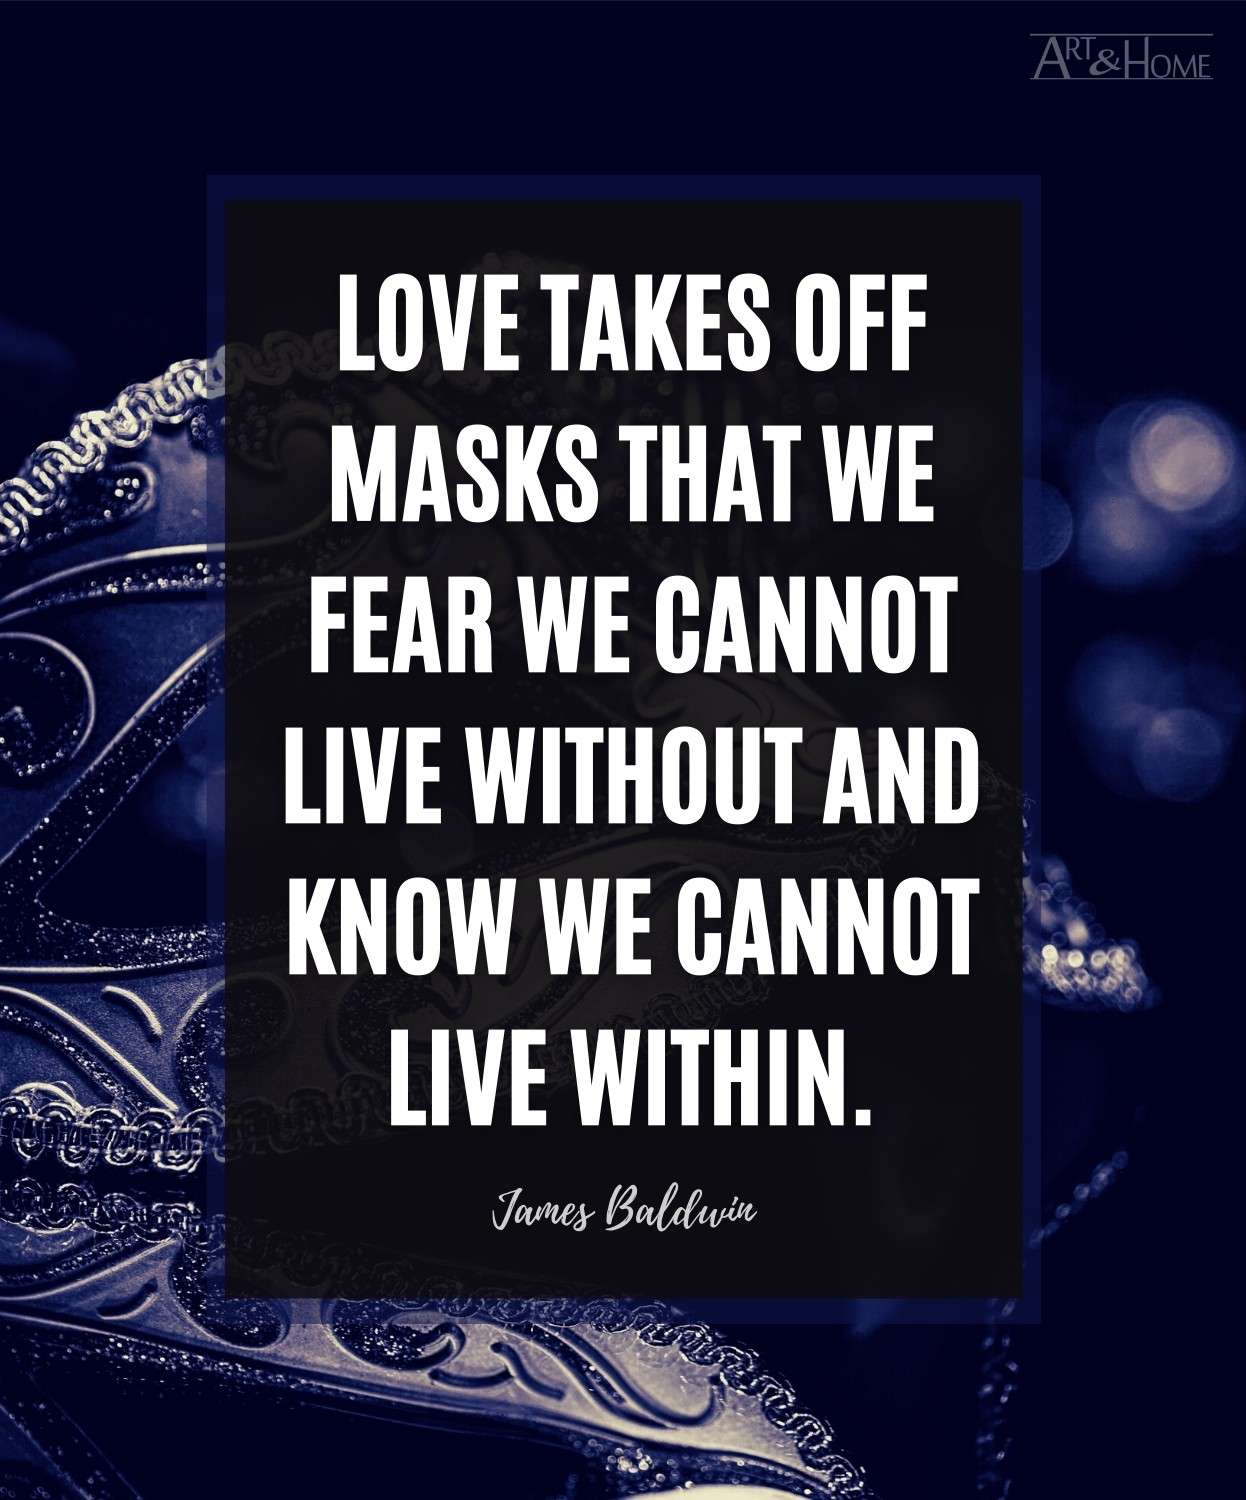 James Baldwin Quote About Love